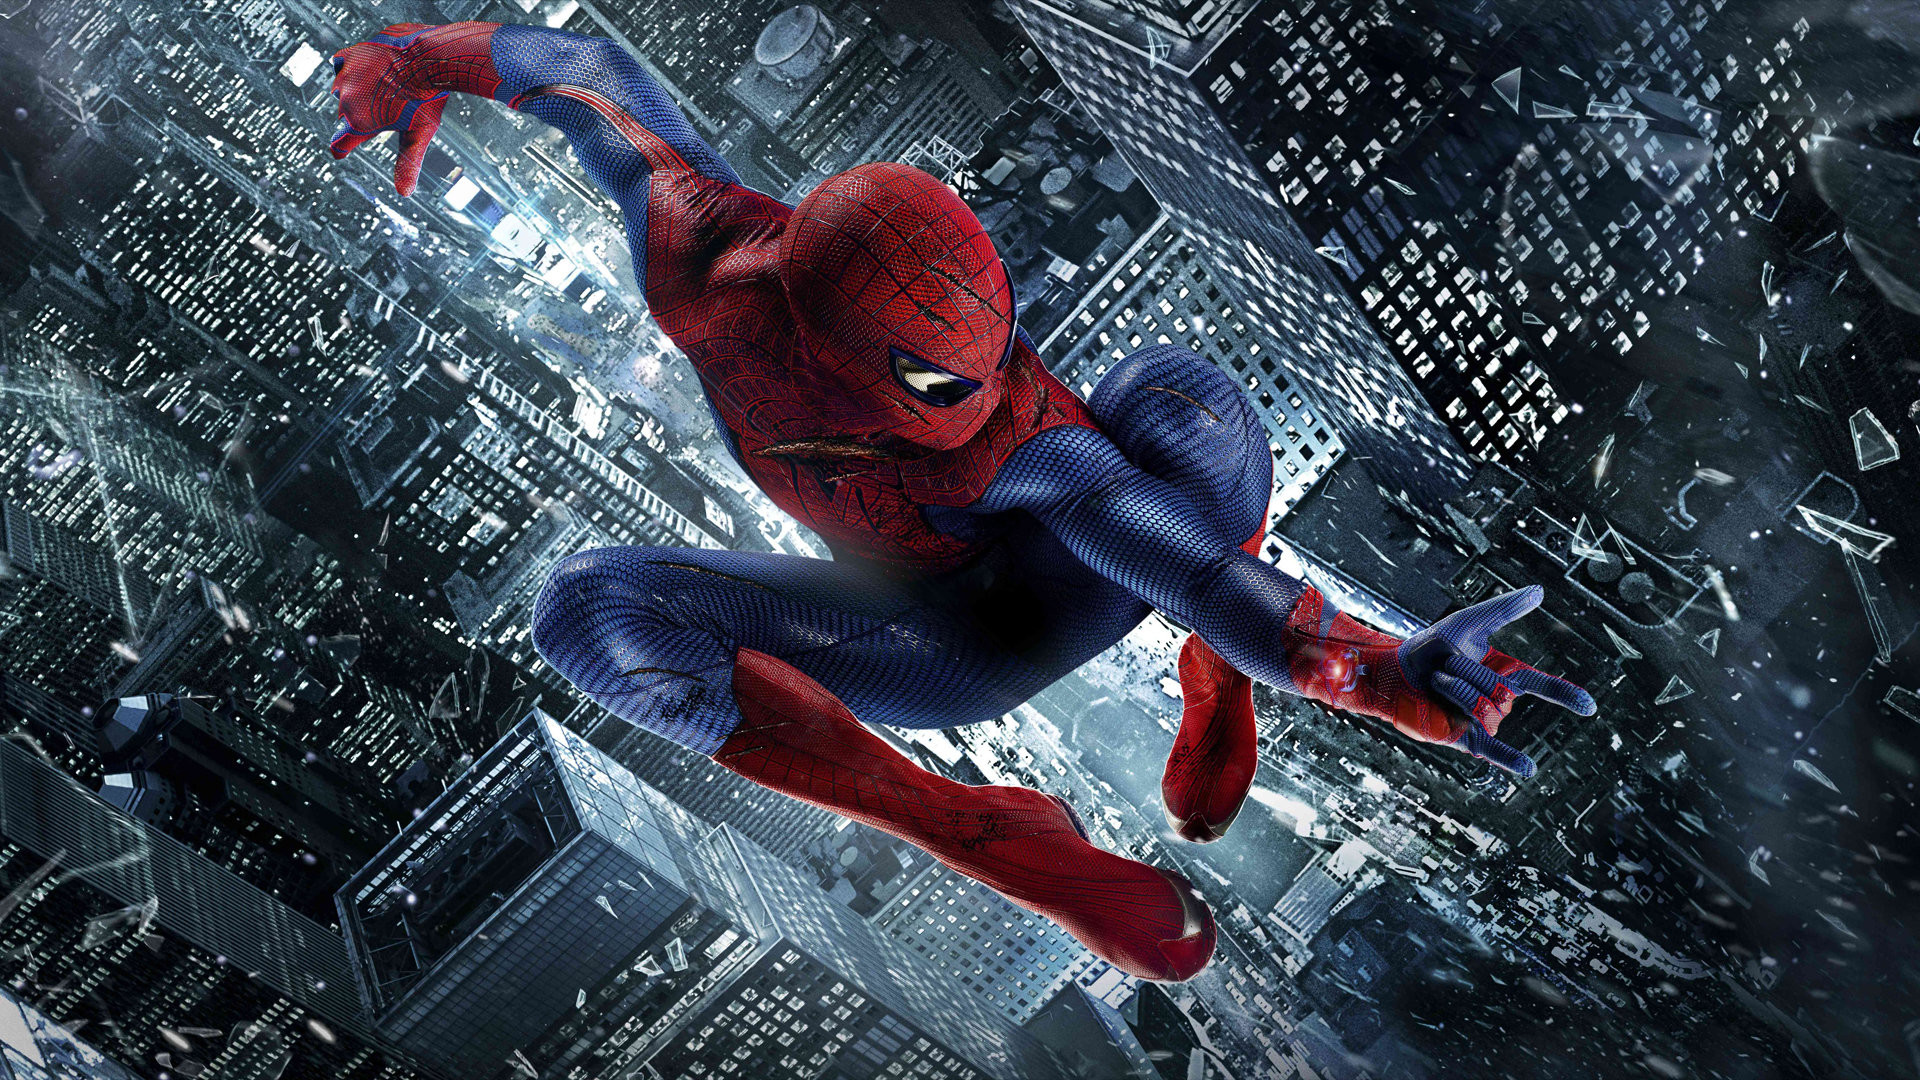 The Amazing Spider Man HD Wallpapers Desktop Backgrounds The 1920×1080 Spiderman  Wallpaper Hd (